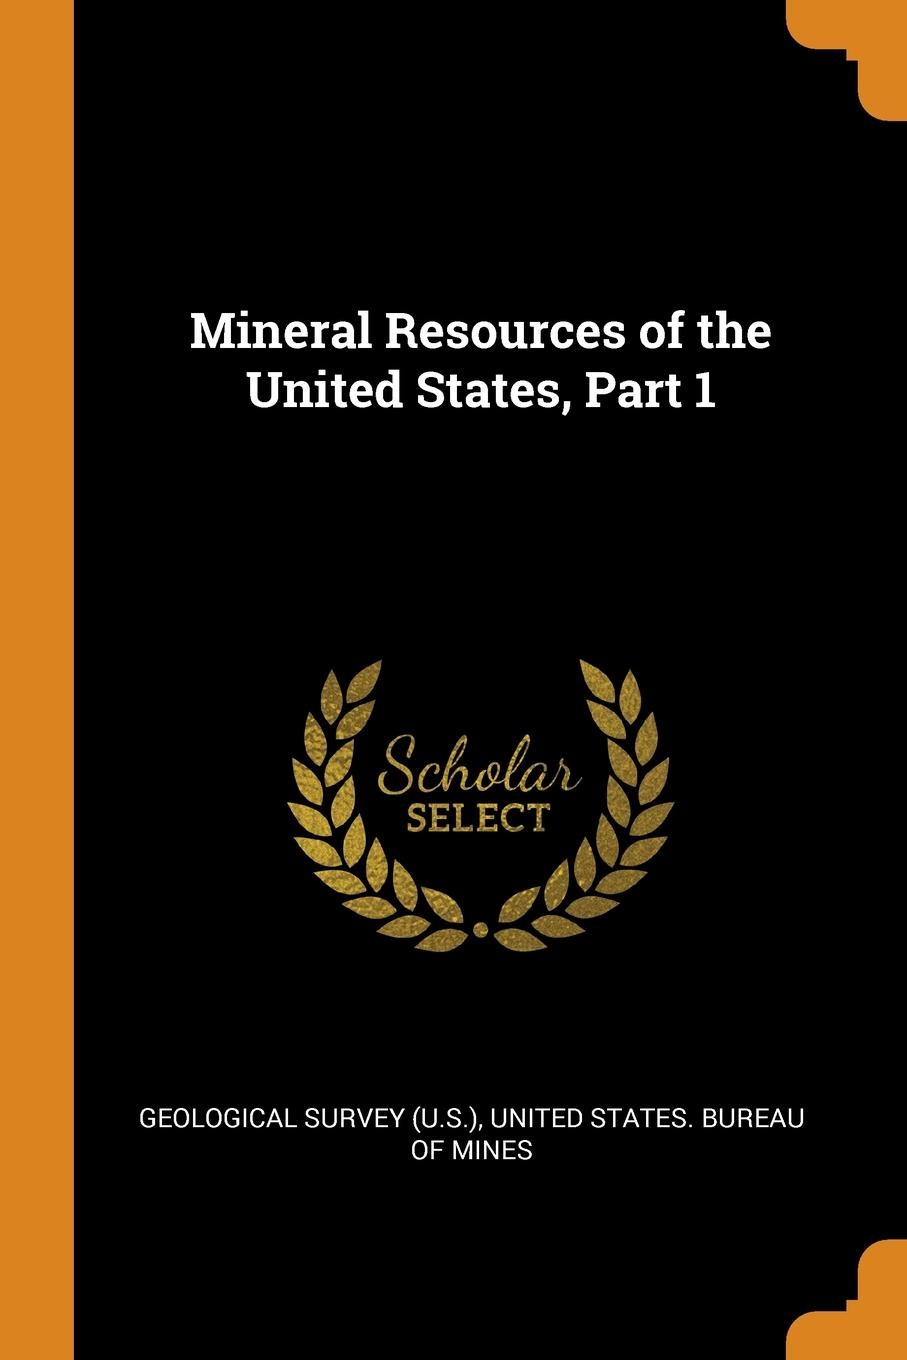 Mineral Resources of the United States, Part 1